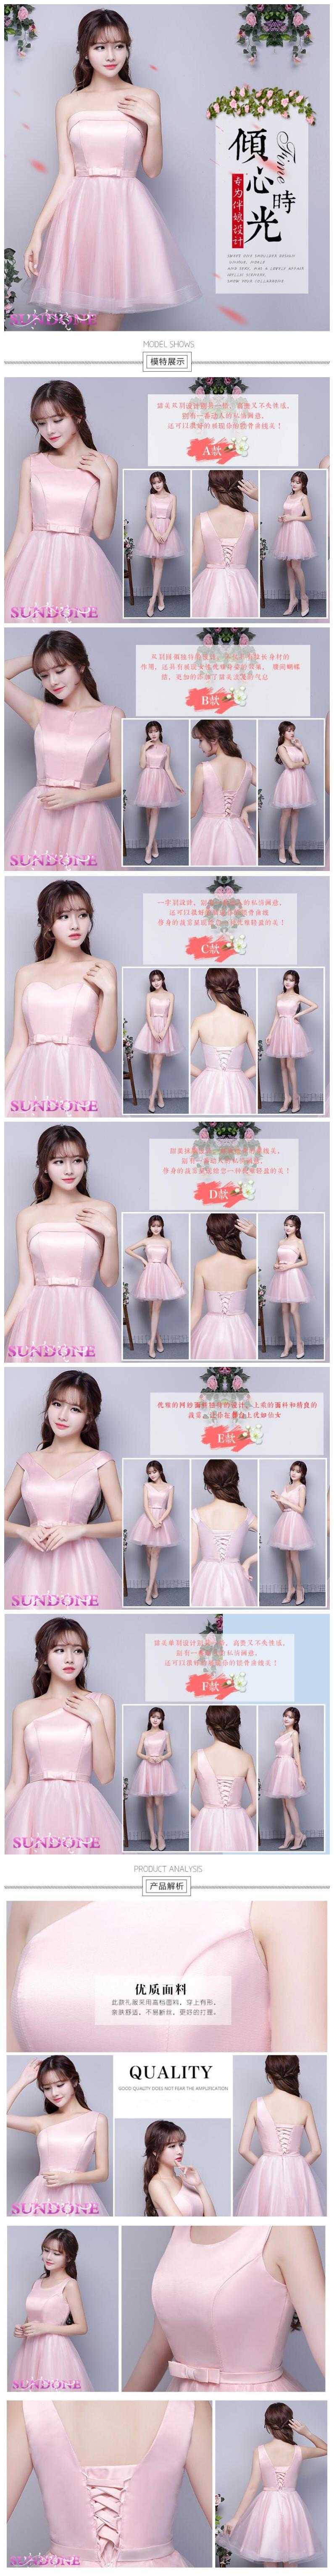 2016 New Sisters Bridesmaid dress wd1608